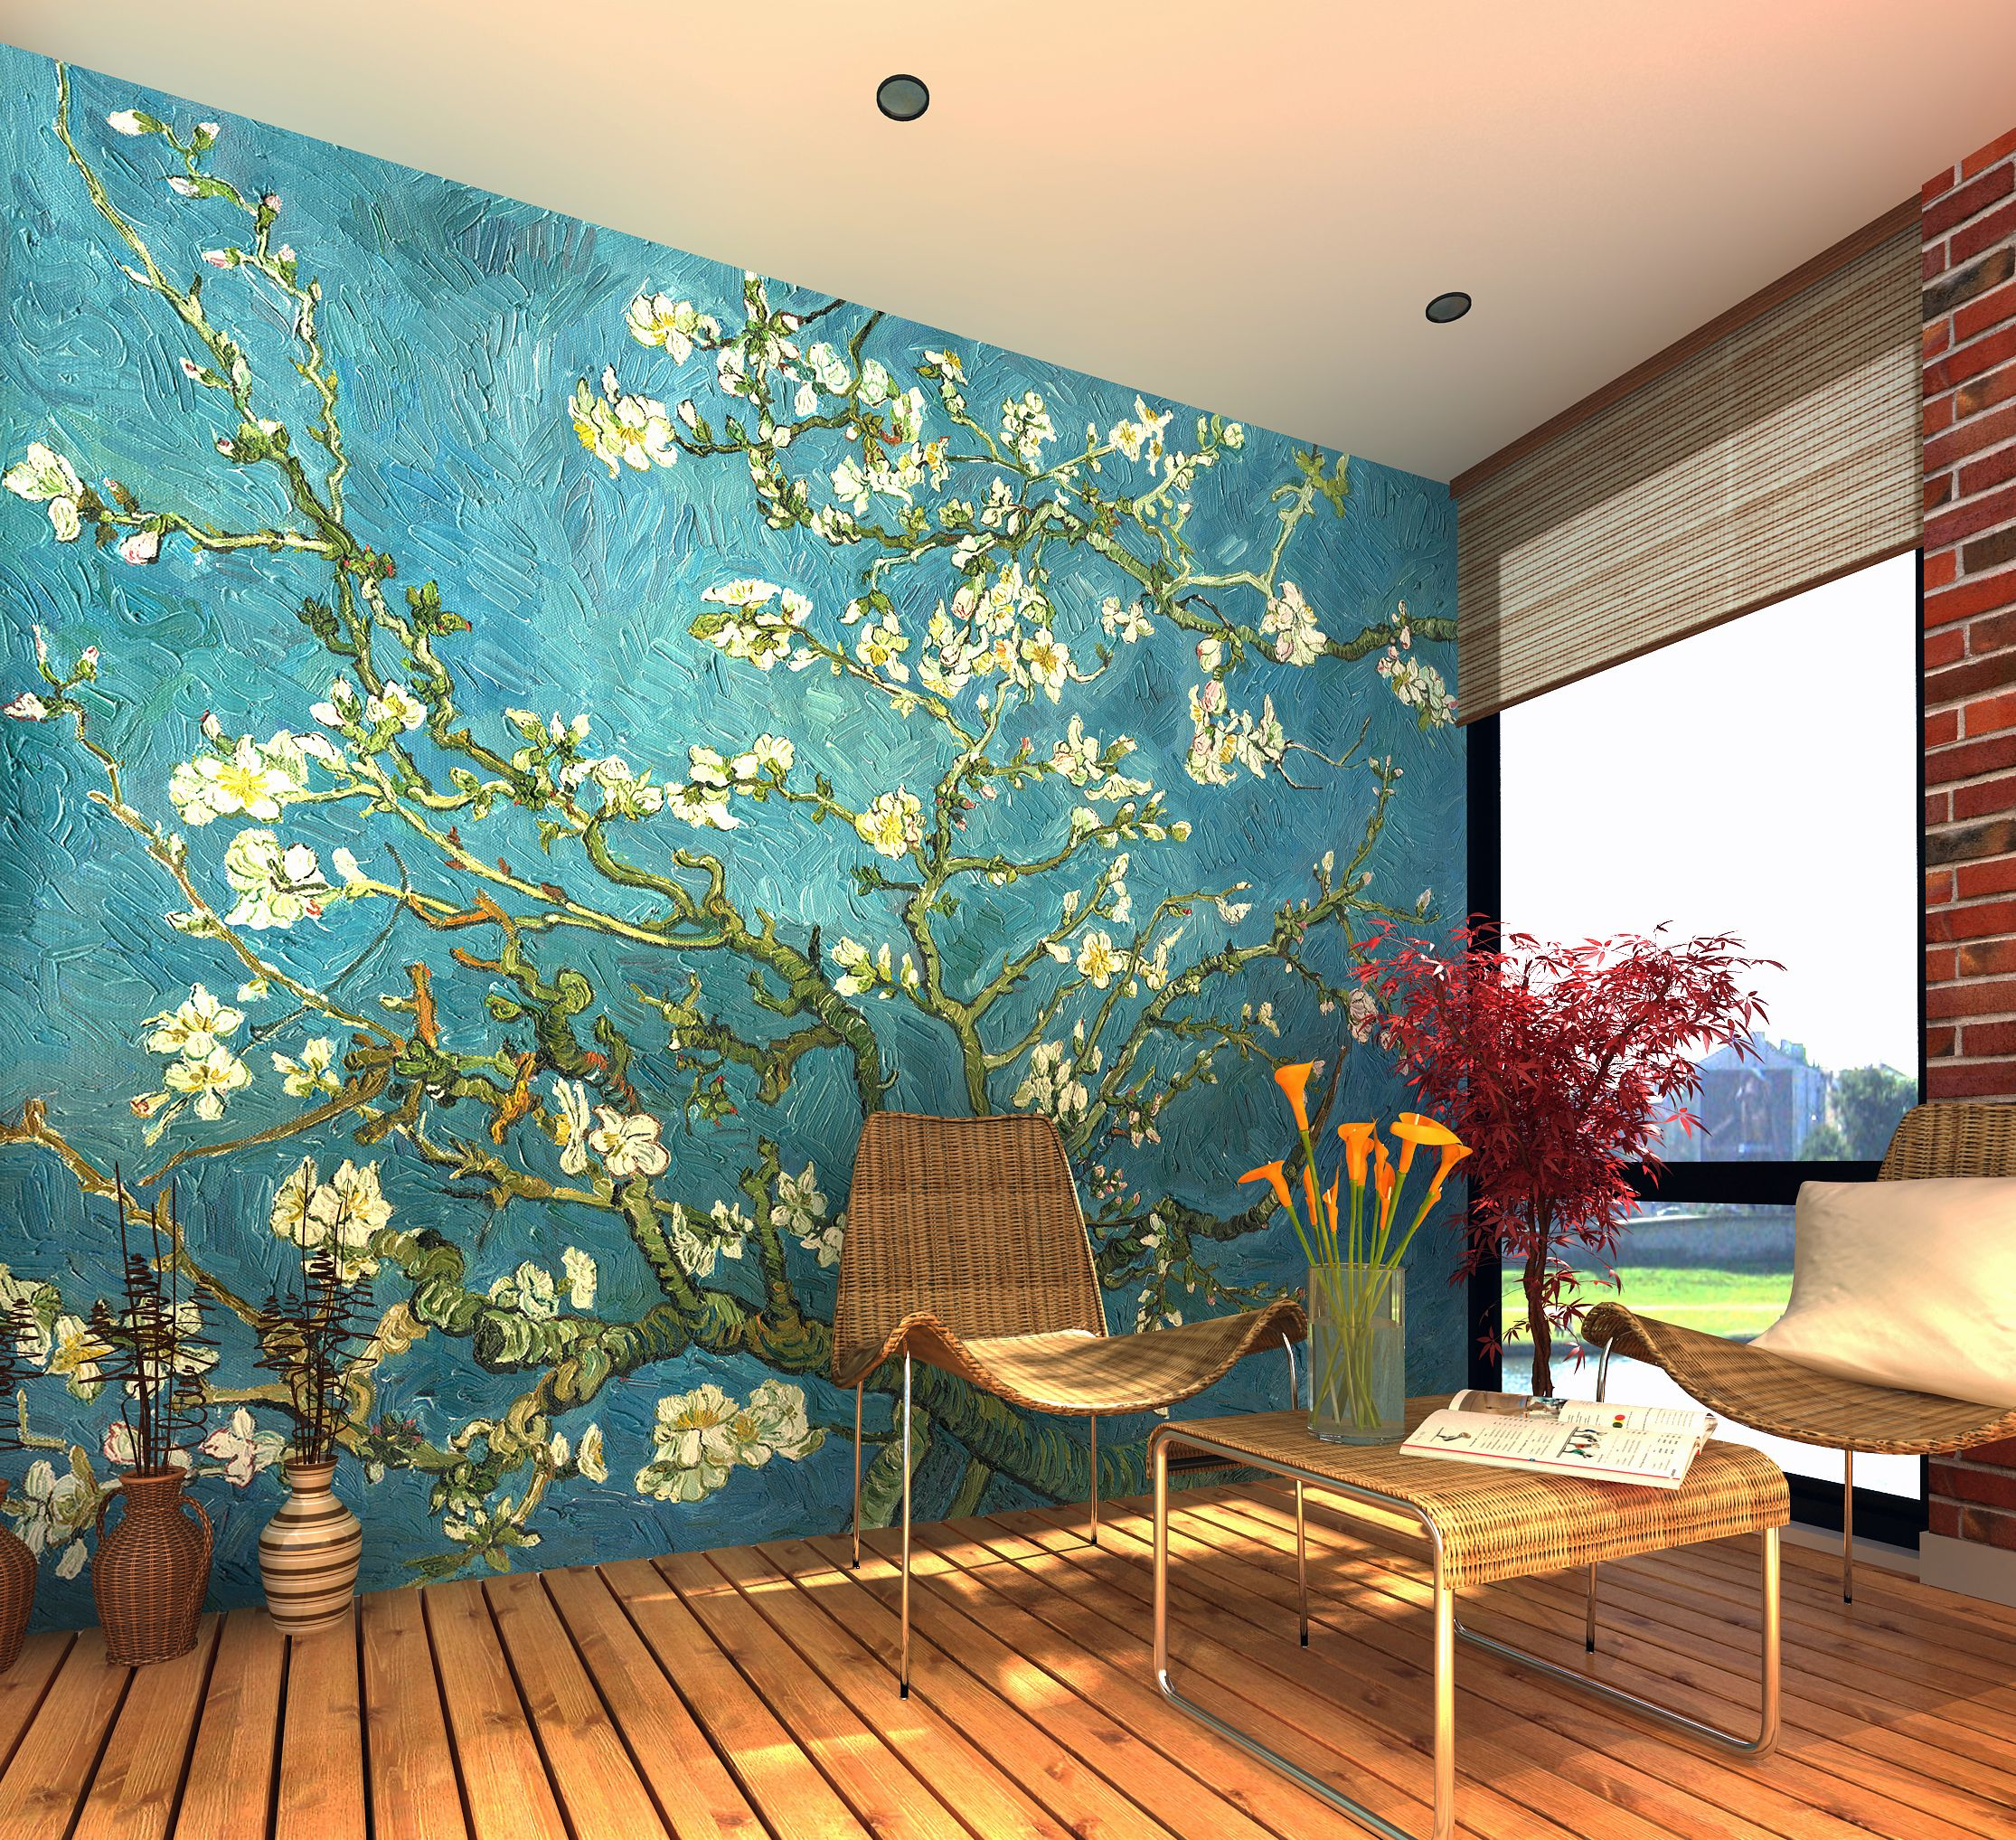 Van gogh almond blossom wall mural wallpaper for Wallpaper images for house walls